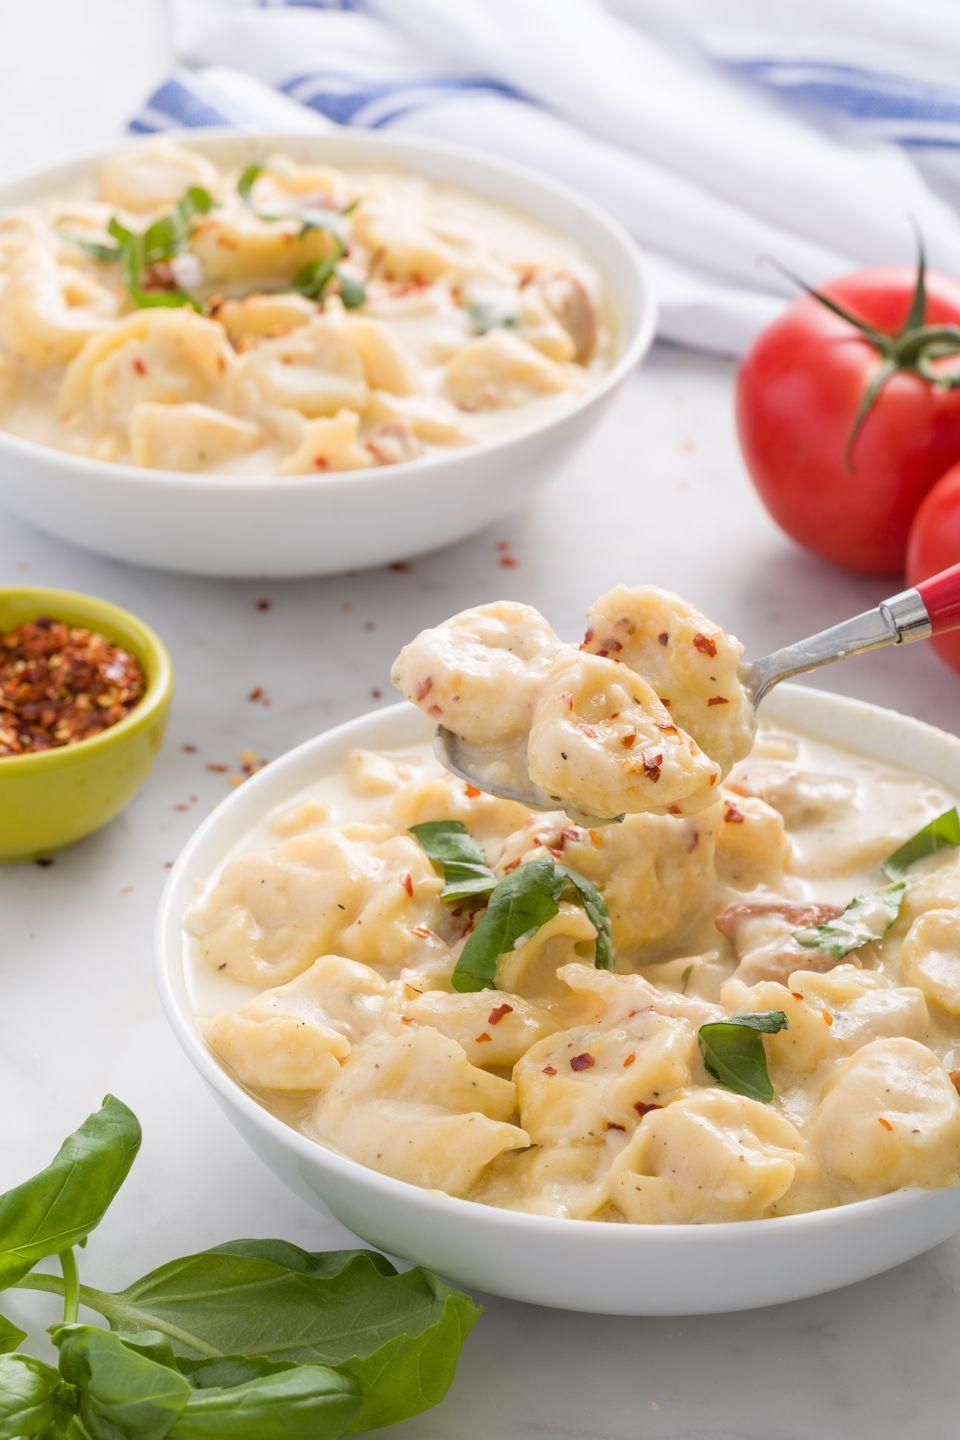 """<p>This is basically an excuse to eat pasta.</p><p>Get the recipe from <a href=""""https://www.delish.com/cooking/recipe-ideas/recipes/a44743/cheesy-chicken-alfredo-soup-recipe/"""" rel=""""nofollow noopener"""" target=""""_blank"""" data-ylk=""""slk:Delish"""" class=""""link rapid-noclick-resp"""">Delish</a>. </p>"""